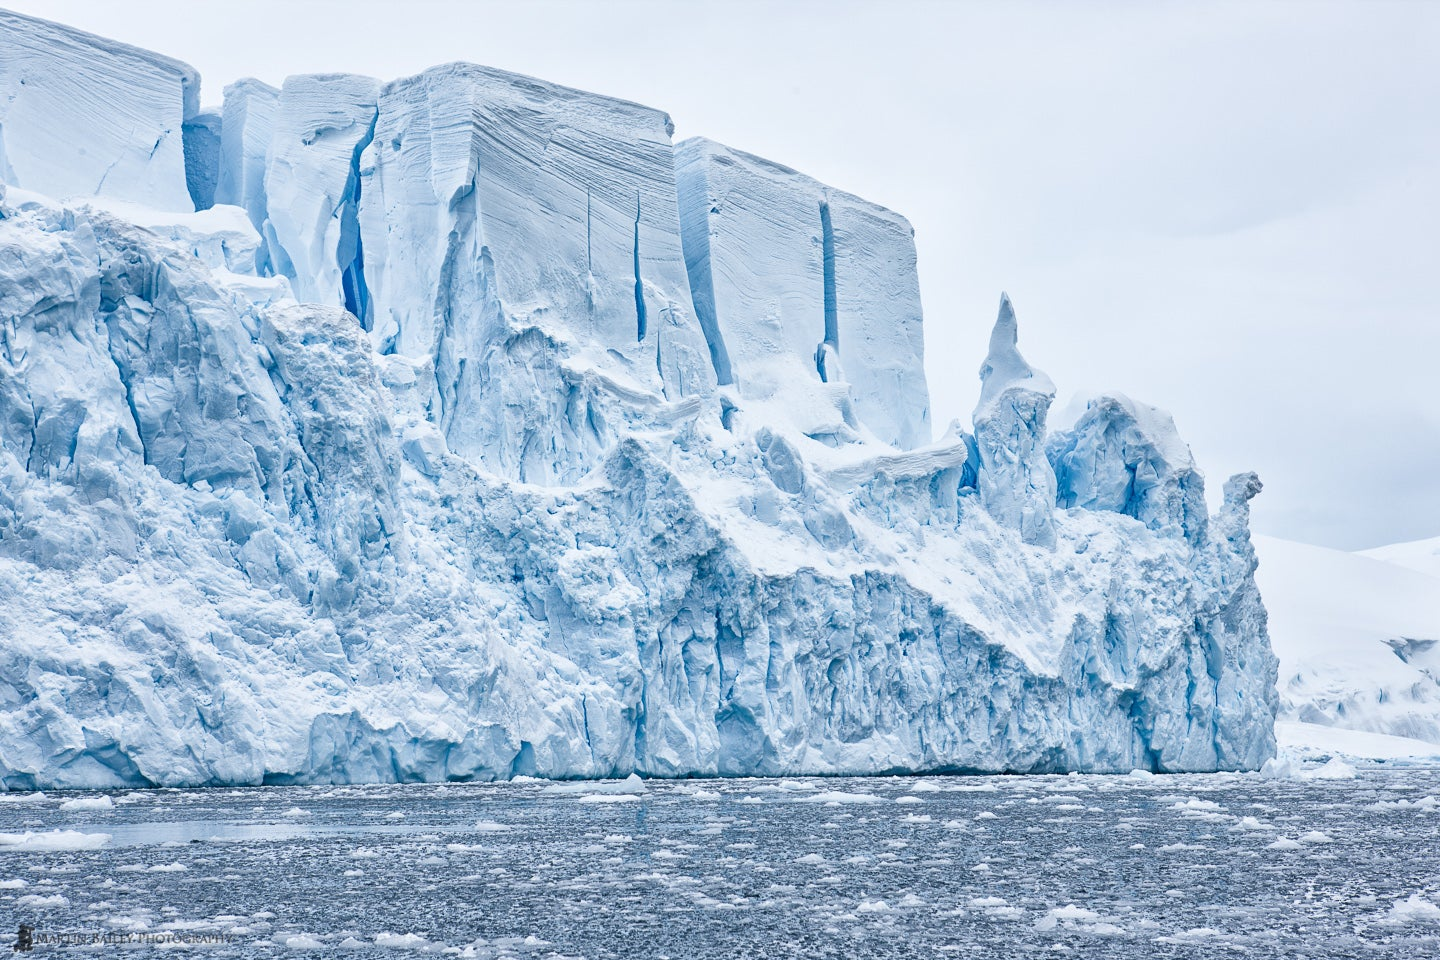 Antarctic ice looks so tempting as summer temperatures soar